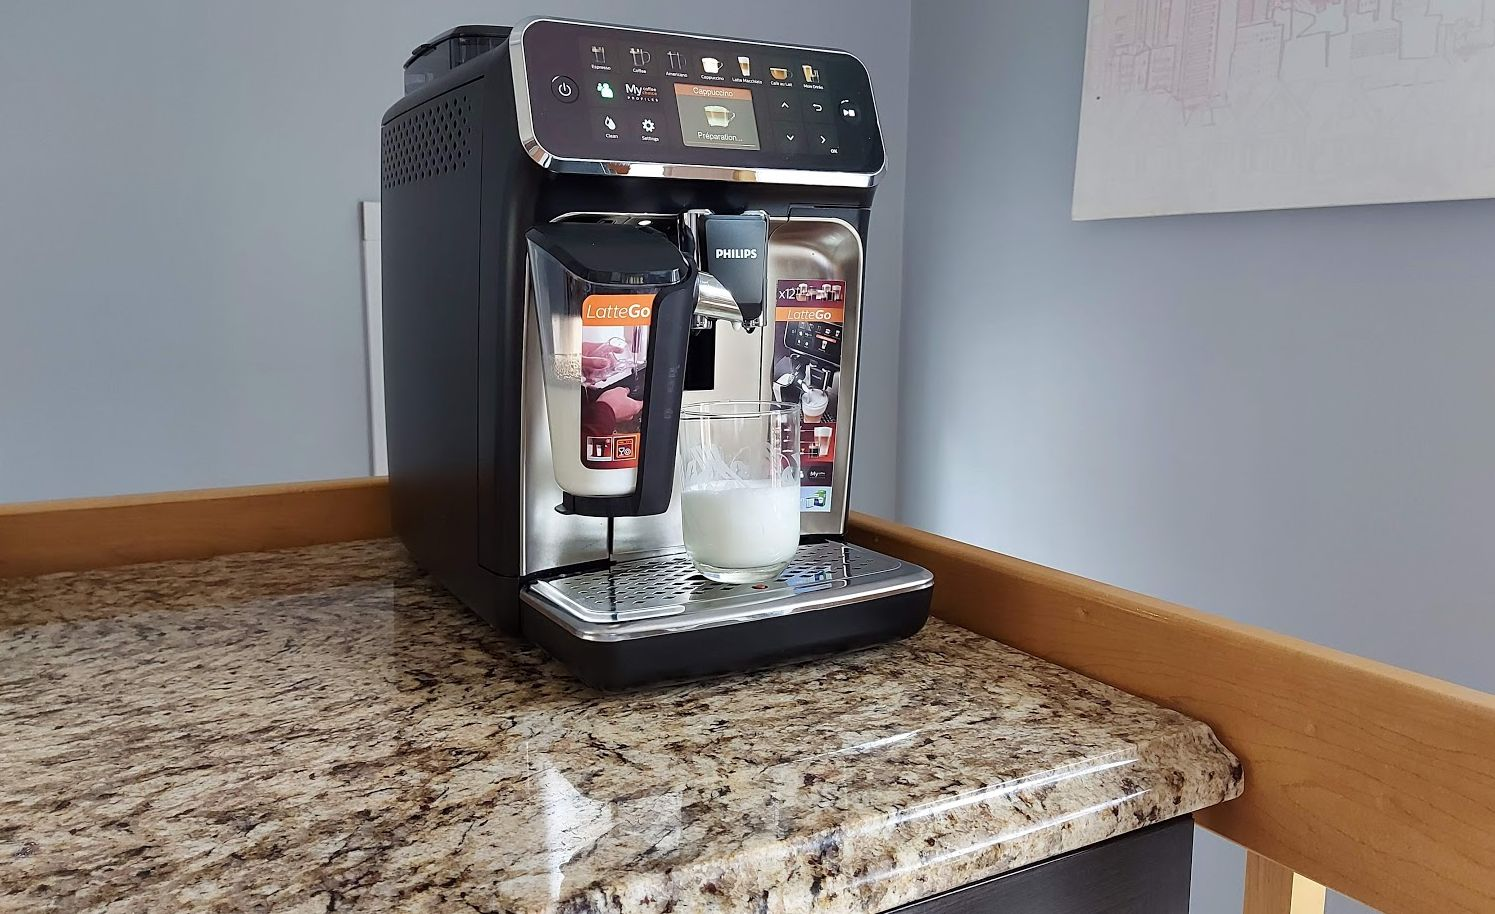 Philips 5400 with Latte Go on a counter.